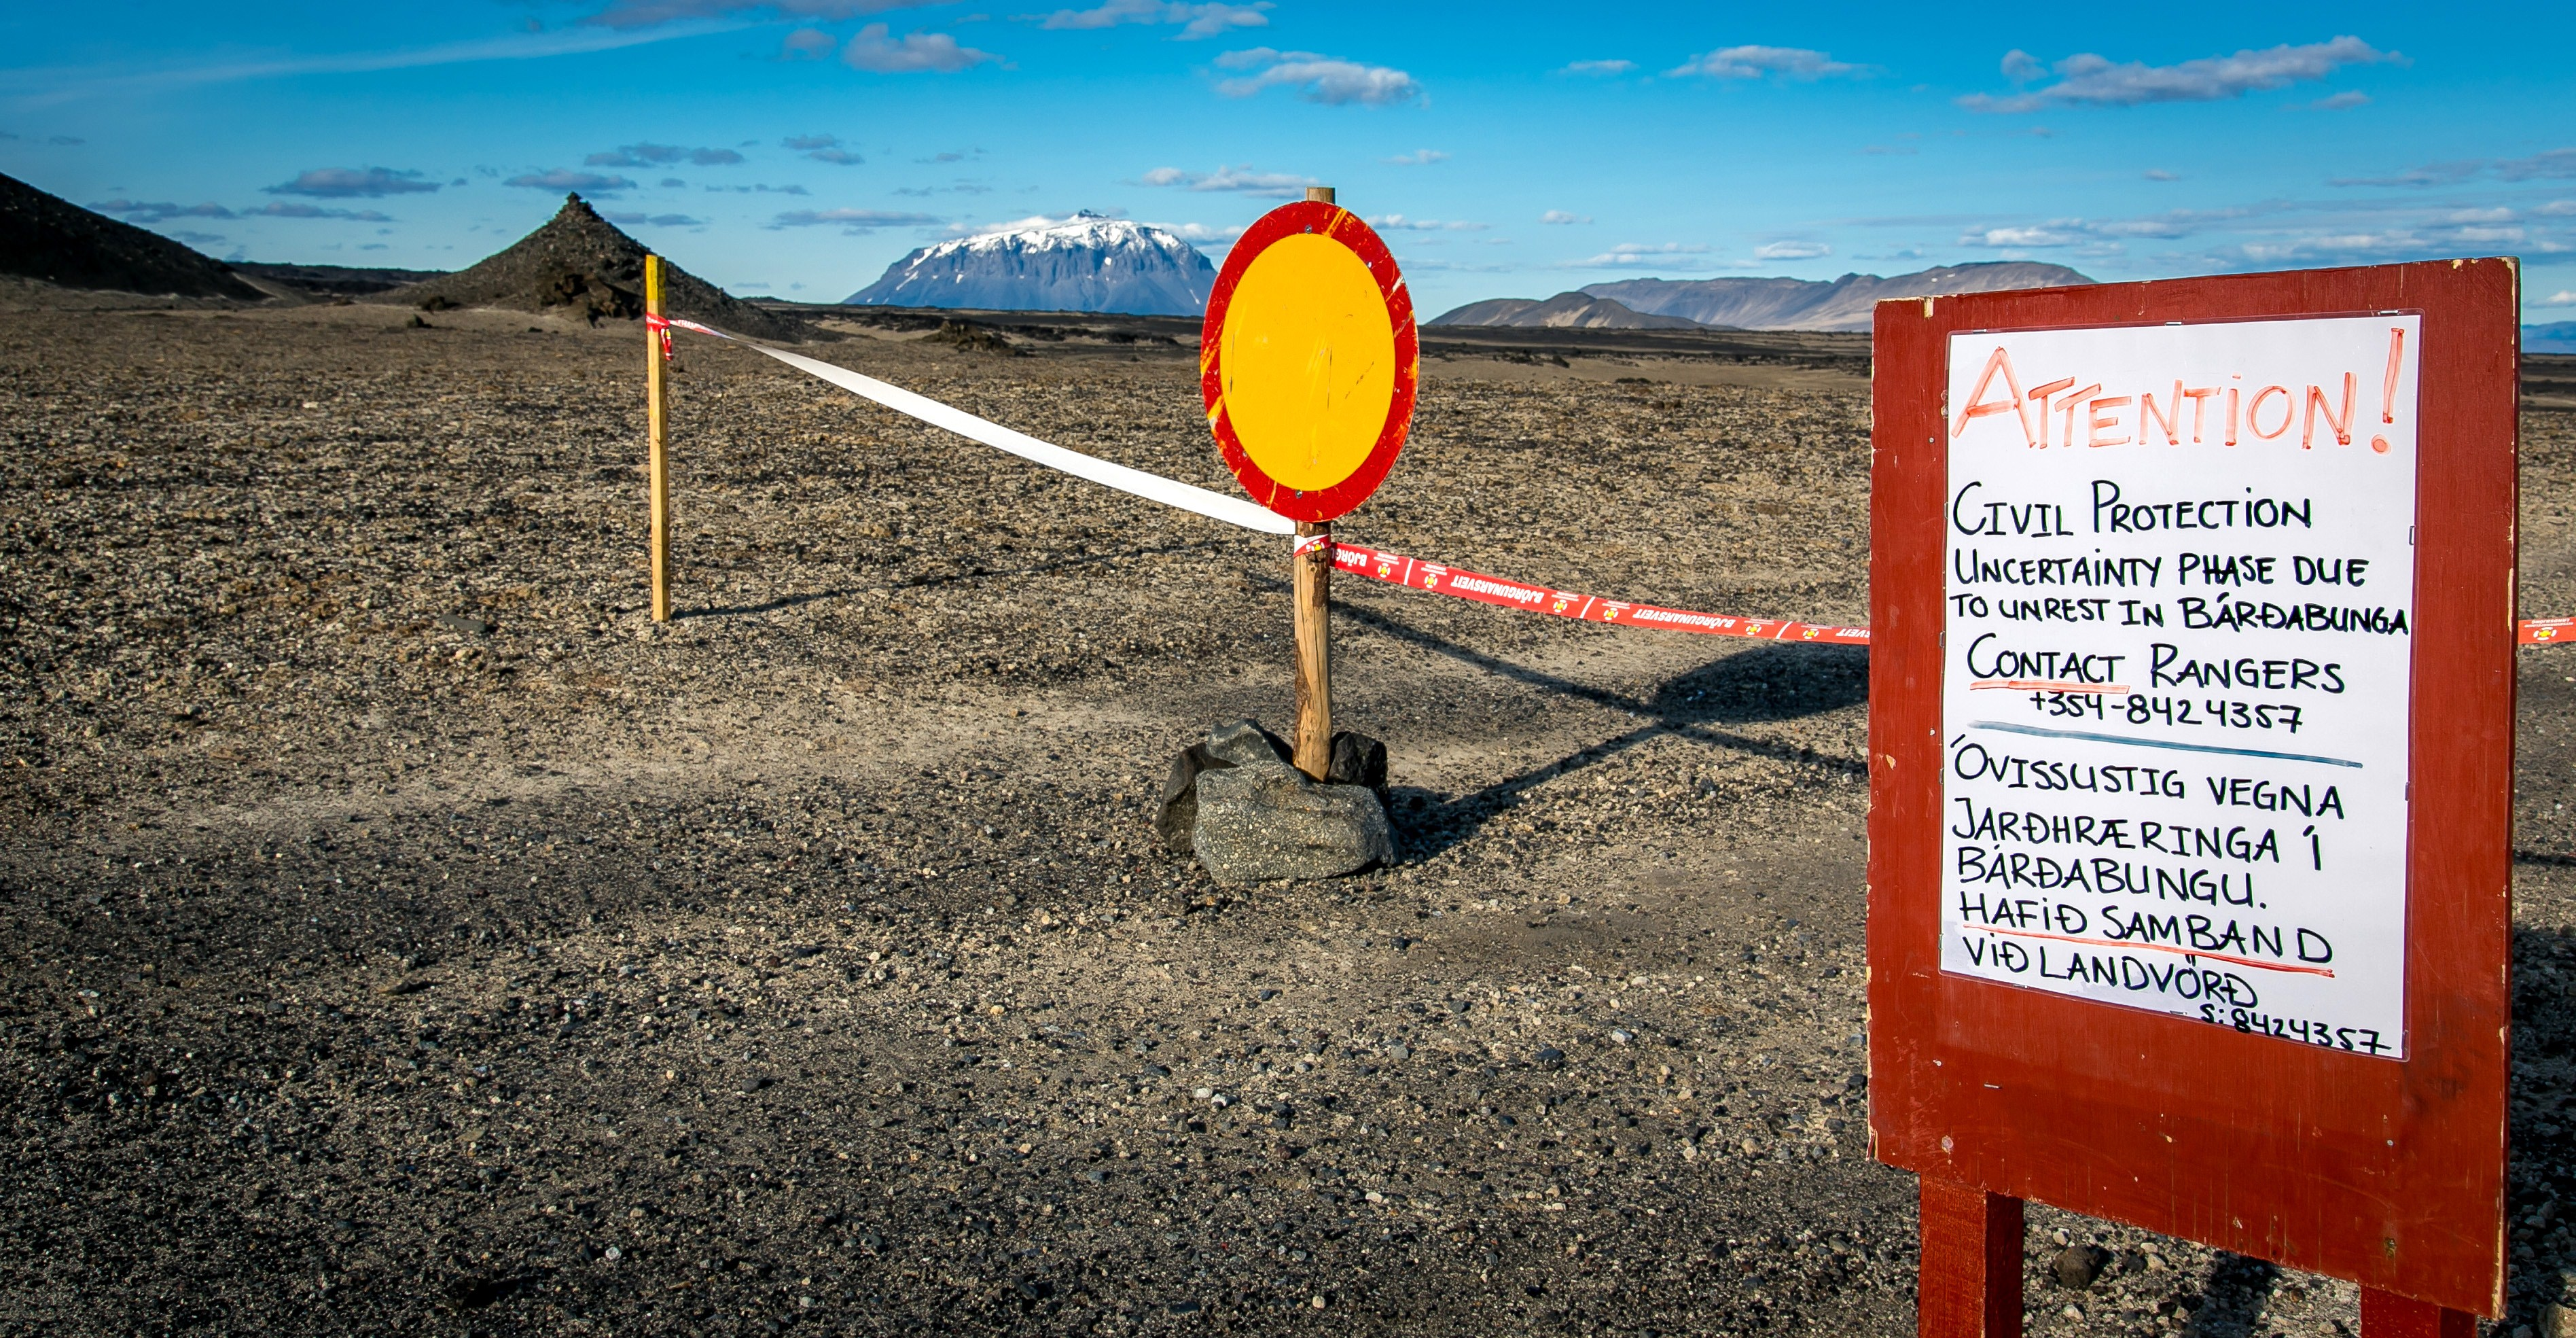 This picture taken on August 23, 2014 shows a sign blocking further access. (Arni Saeberg/AFP/Getty Images)